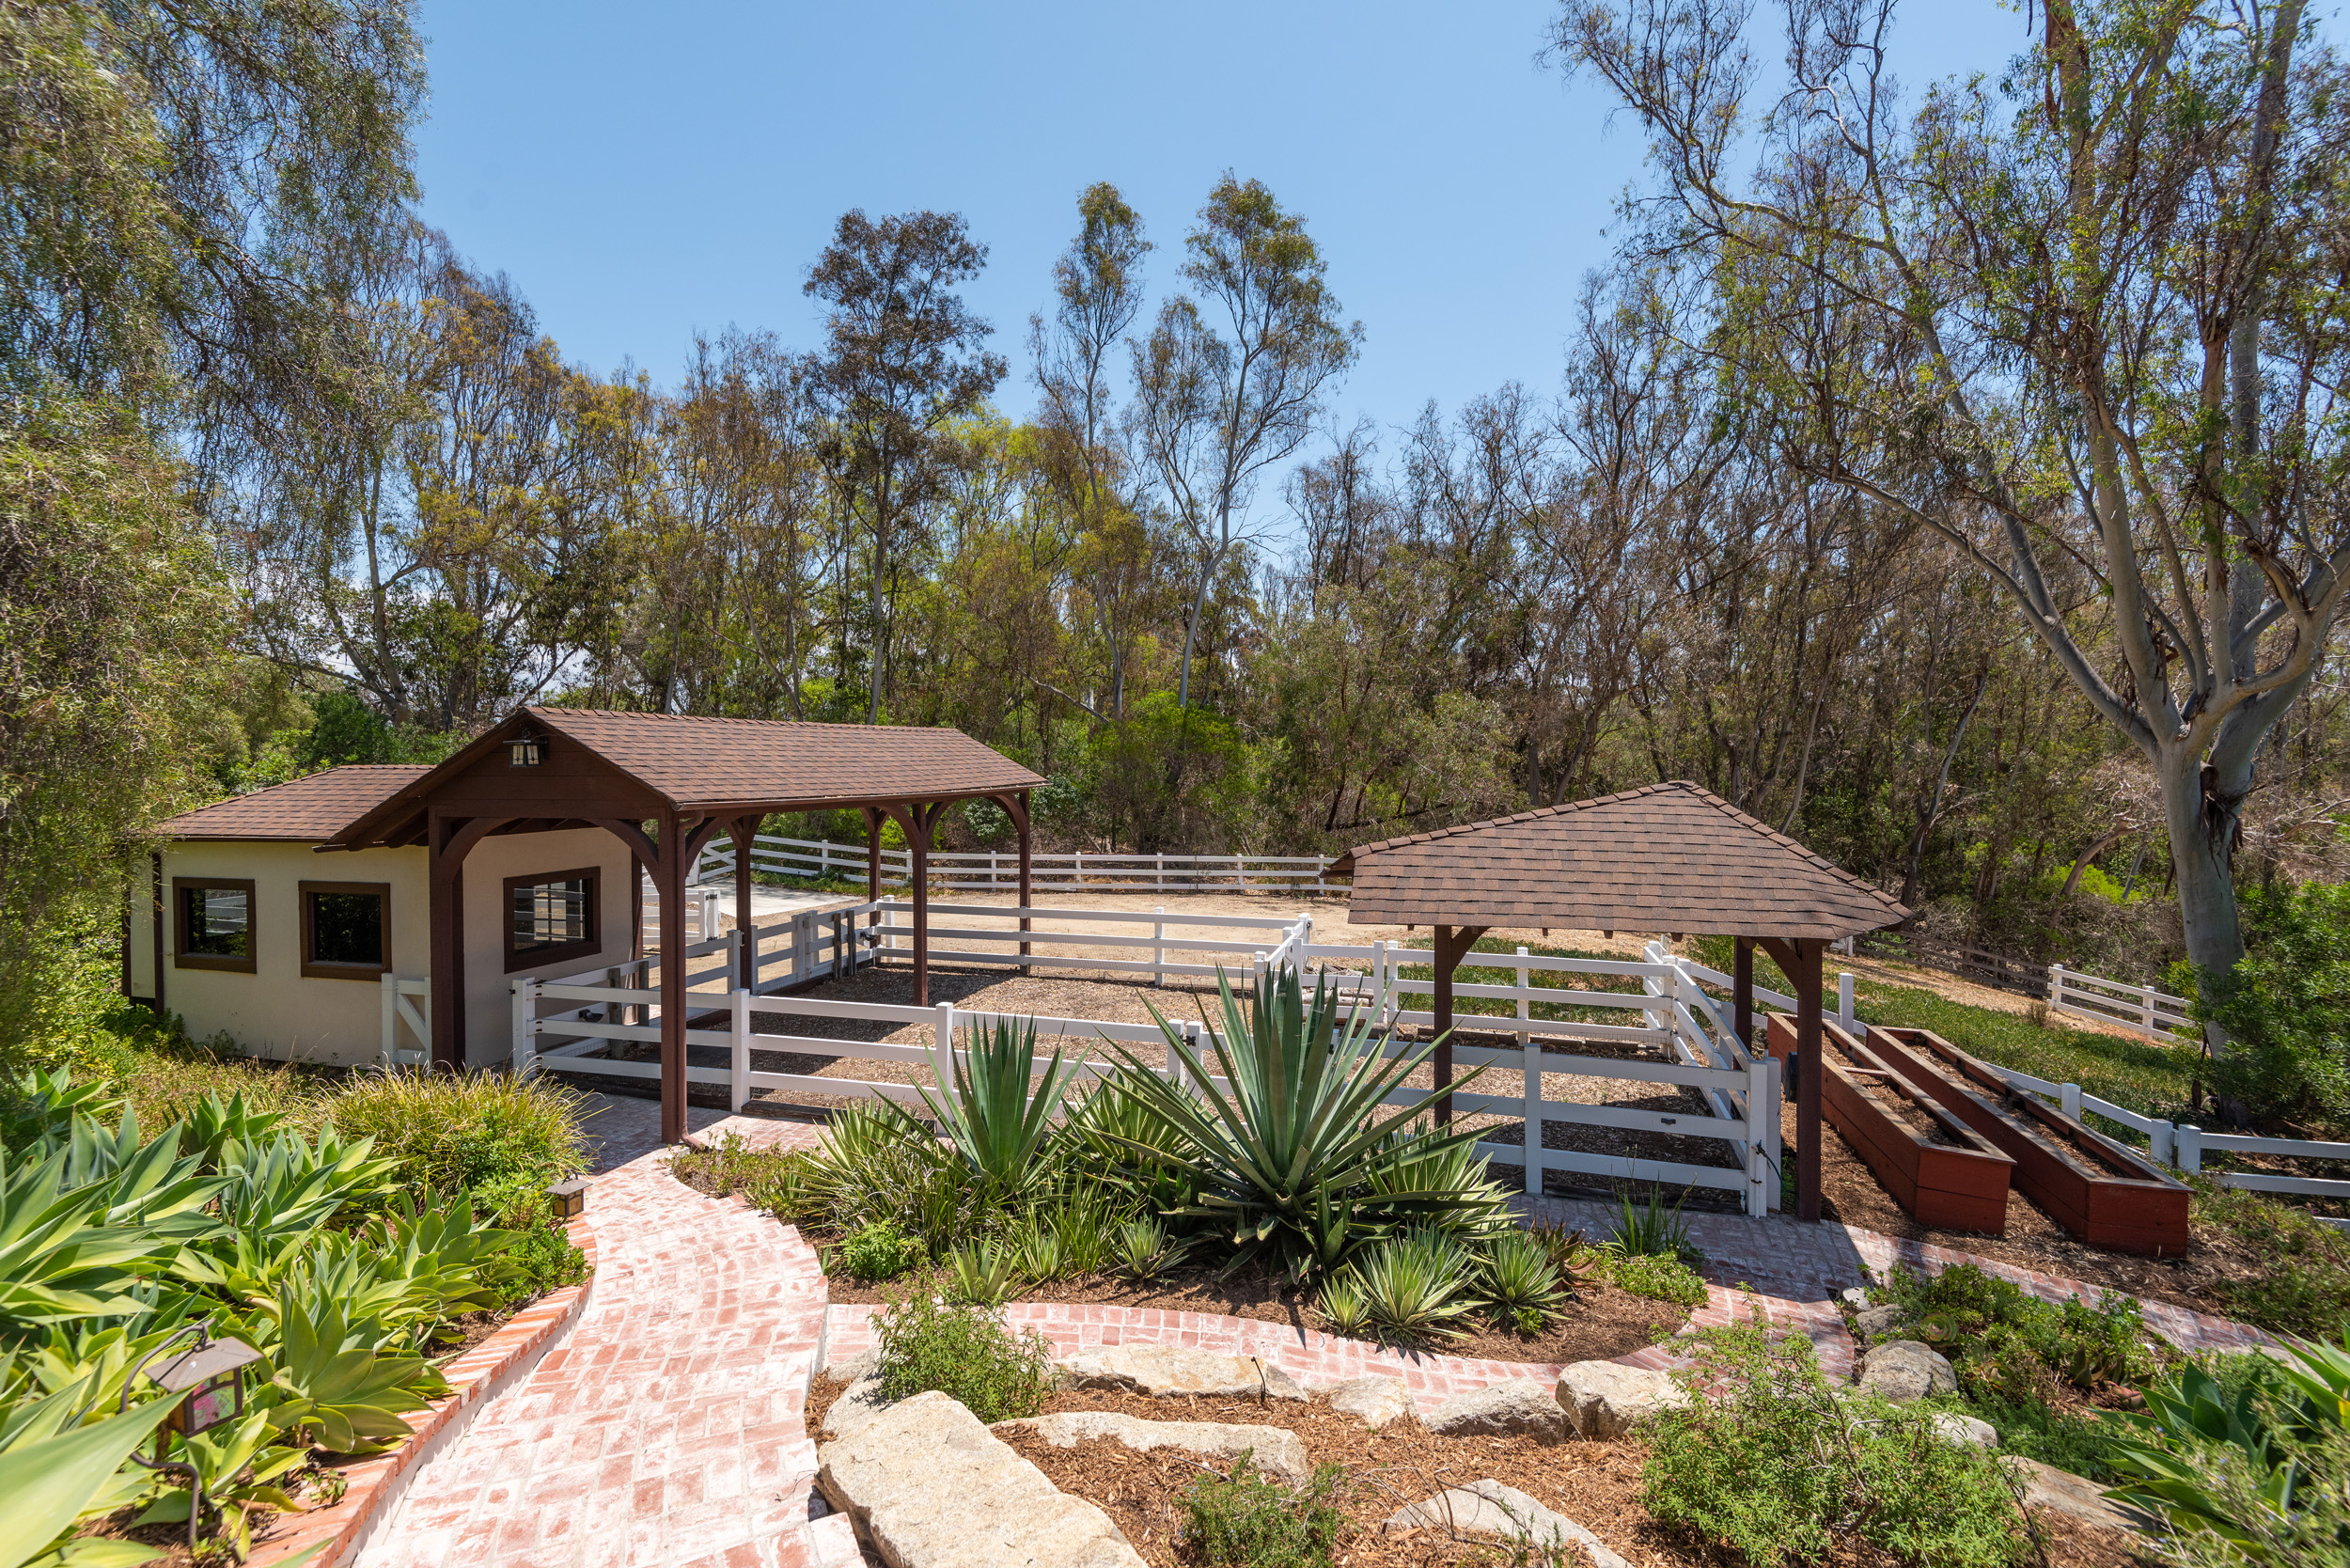 Perfect for your family horse! - -Tack Room-Covered Paddock-Turn Outs- Cross Tie Area with Wash Rack- 3.18 Acres = Room for Barn- Near Covenant Trails